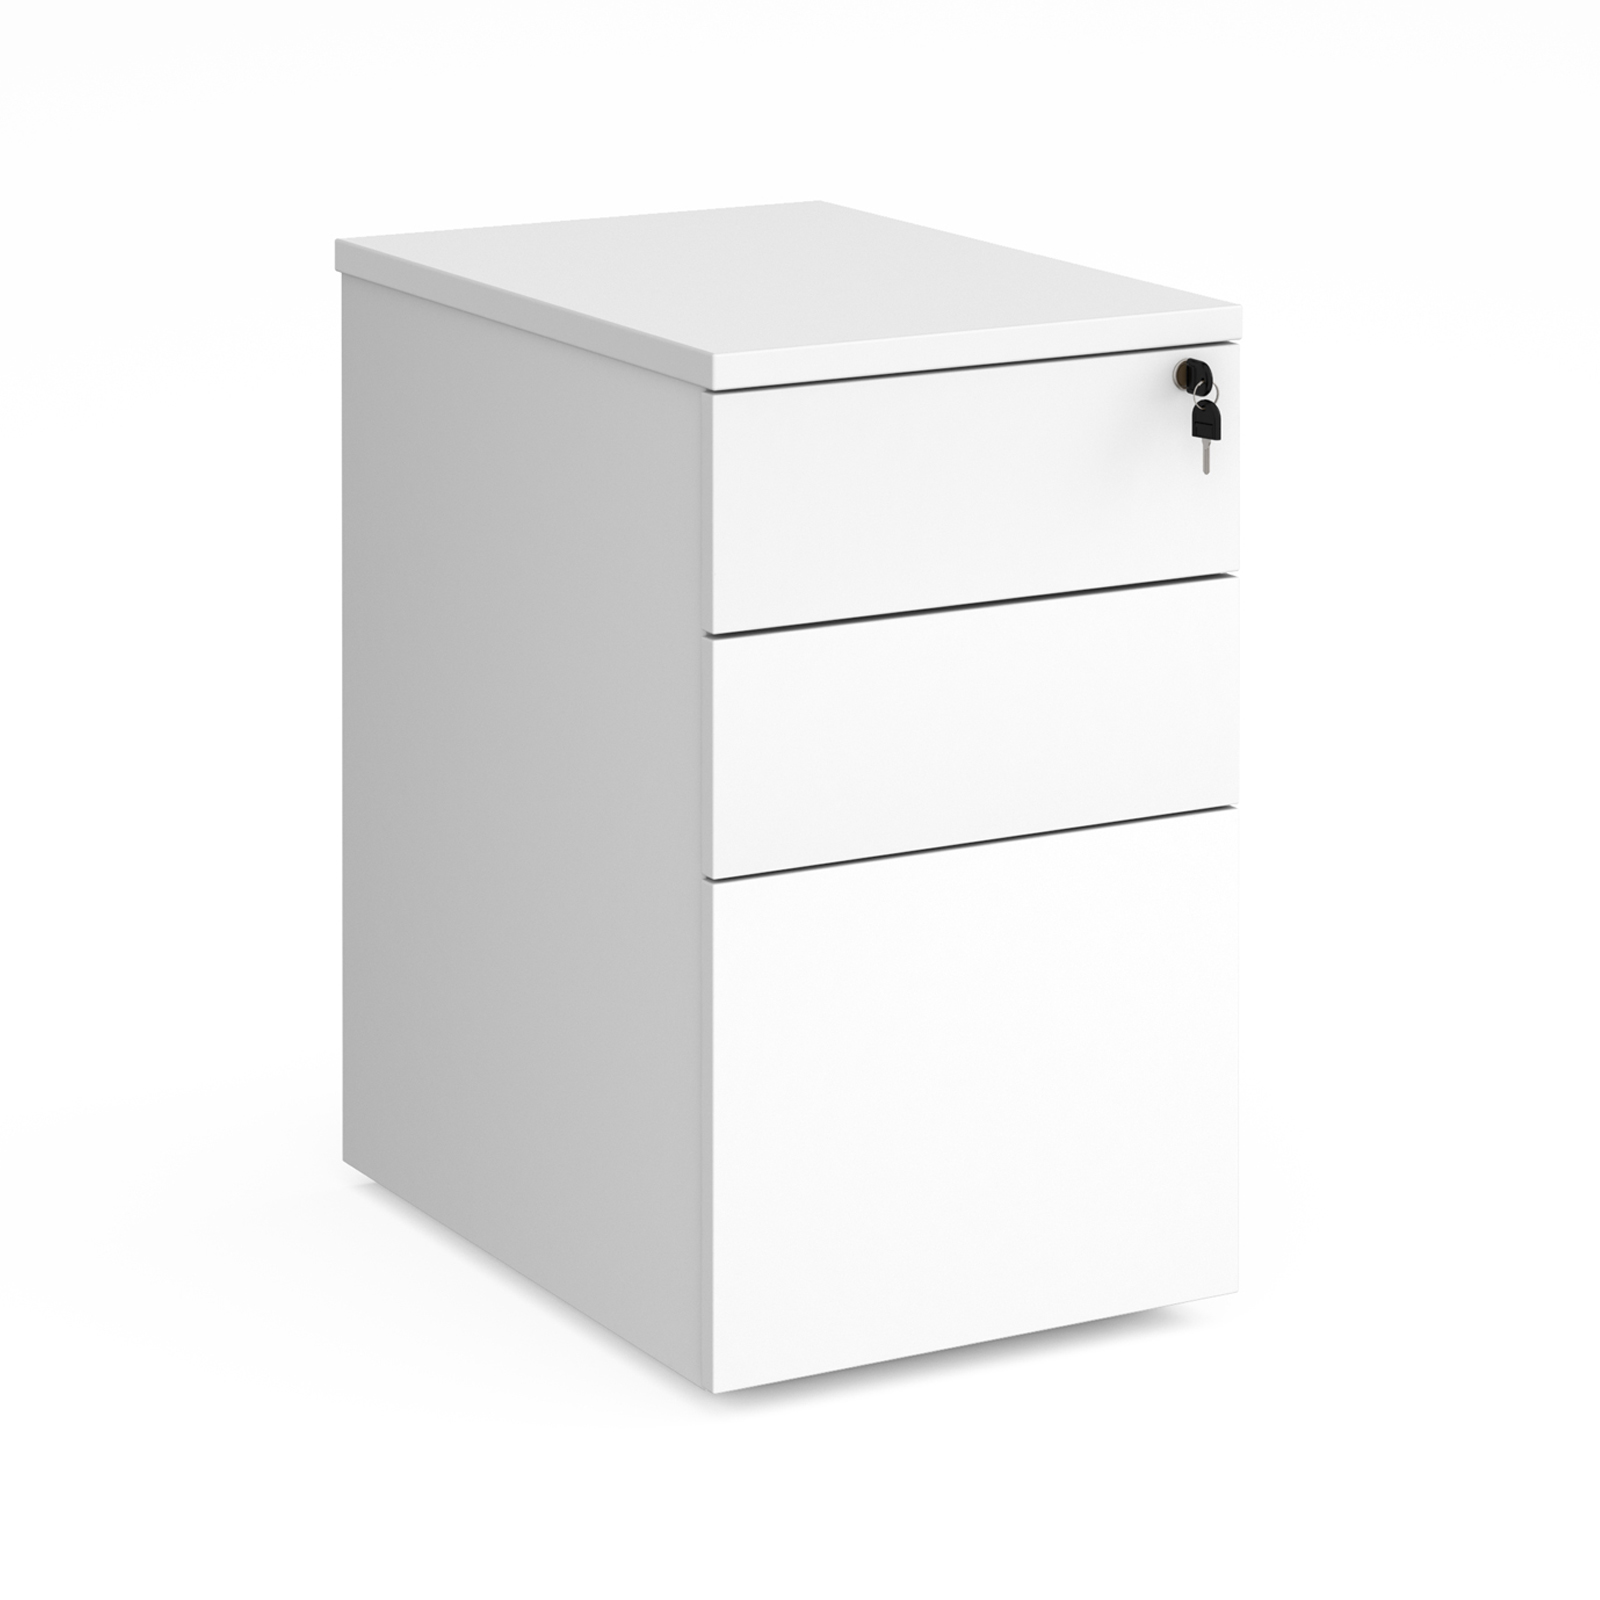 Duo deluxe desk high pedestal 600mm